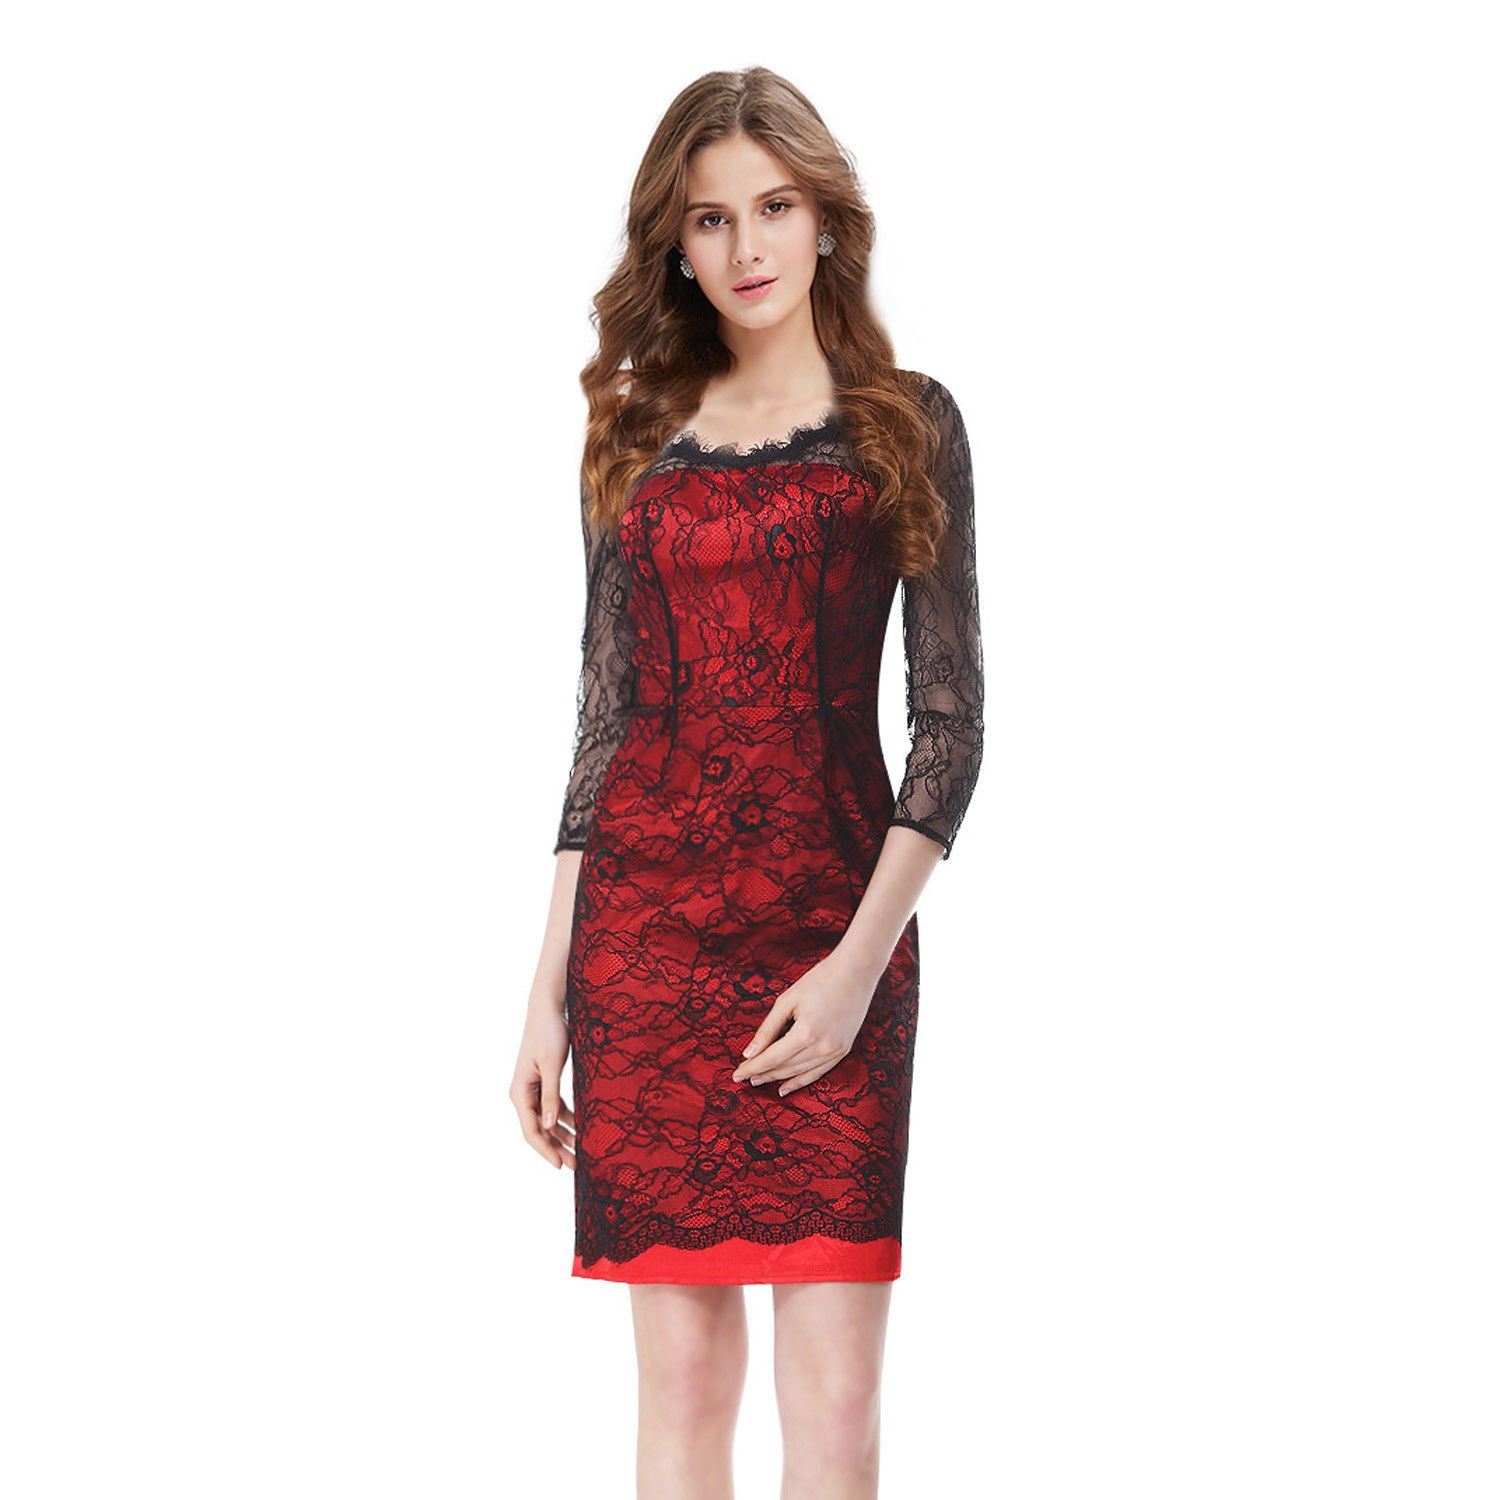 Nice everpretty us women red short lace sexy formal cocktail dress